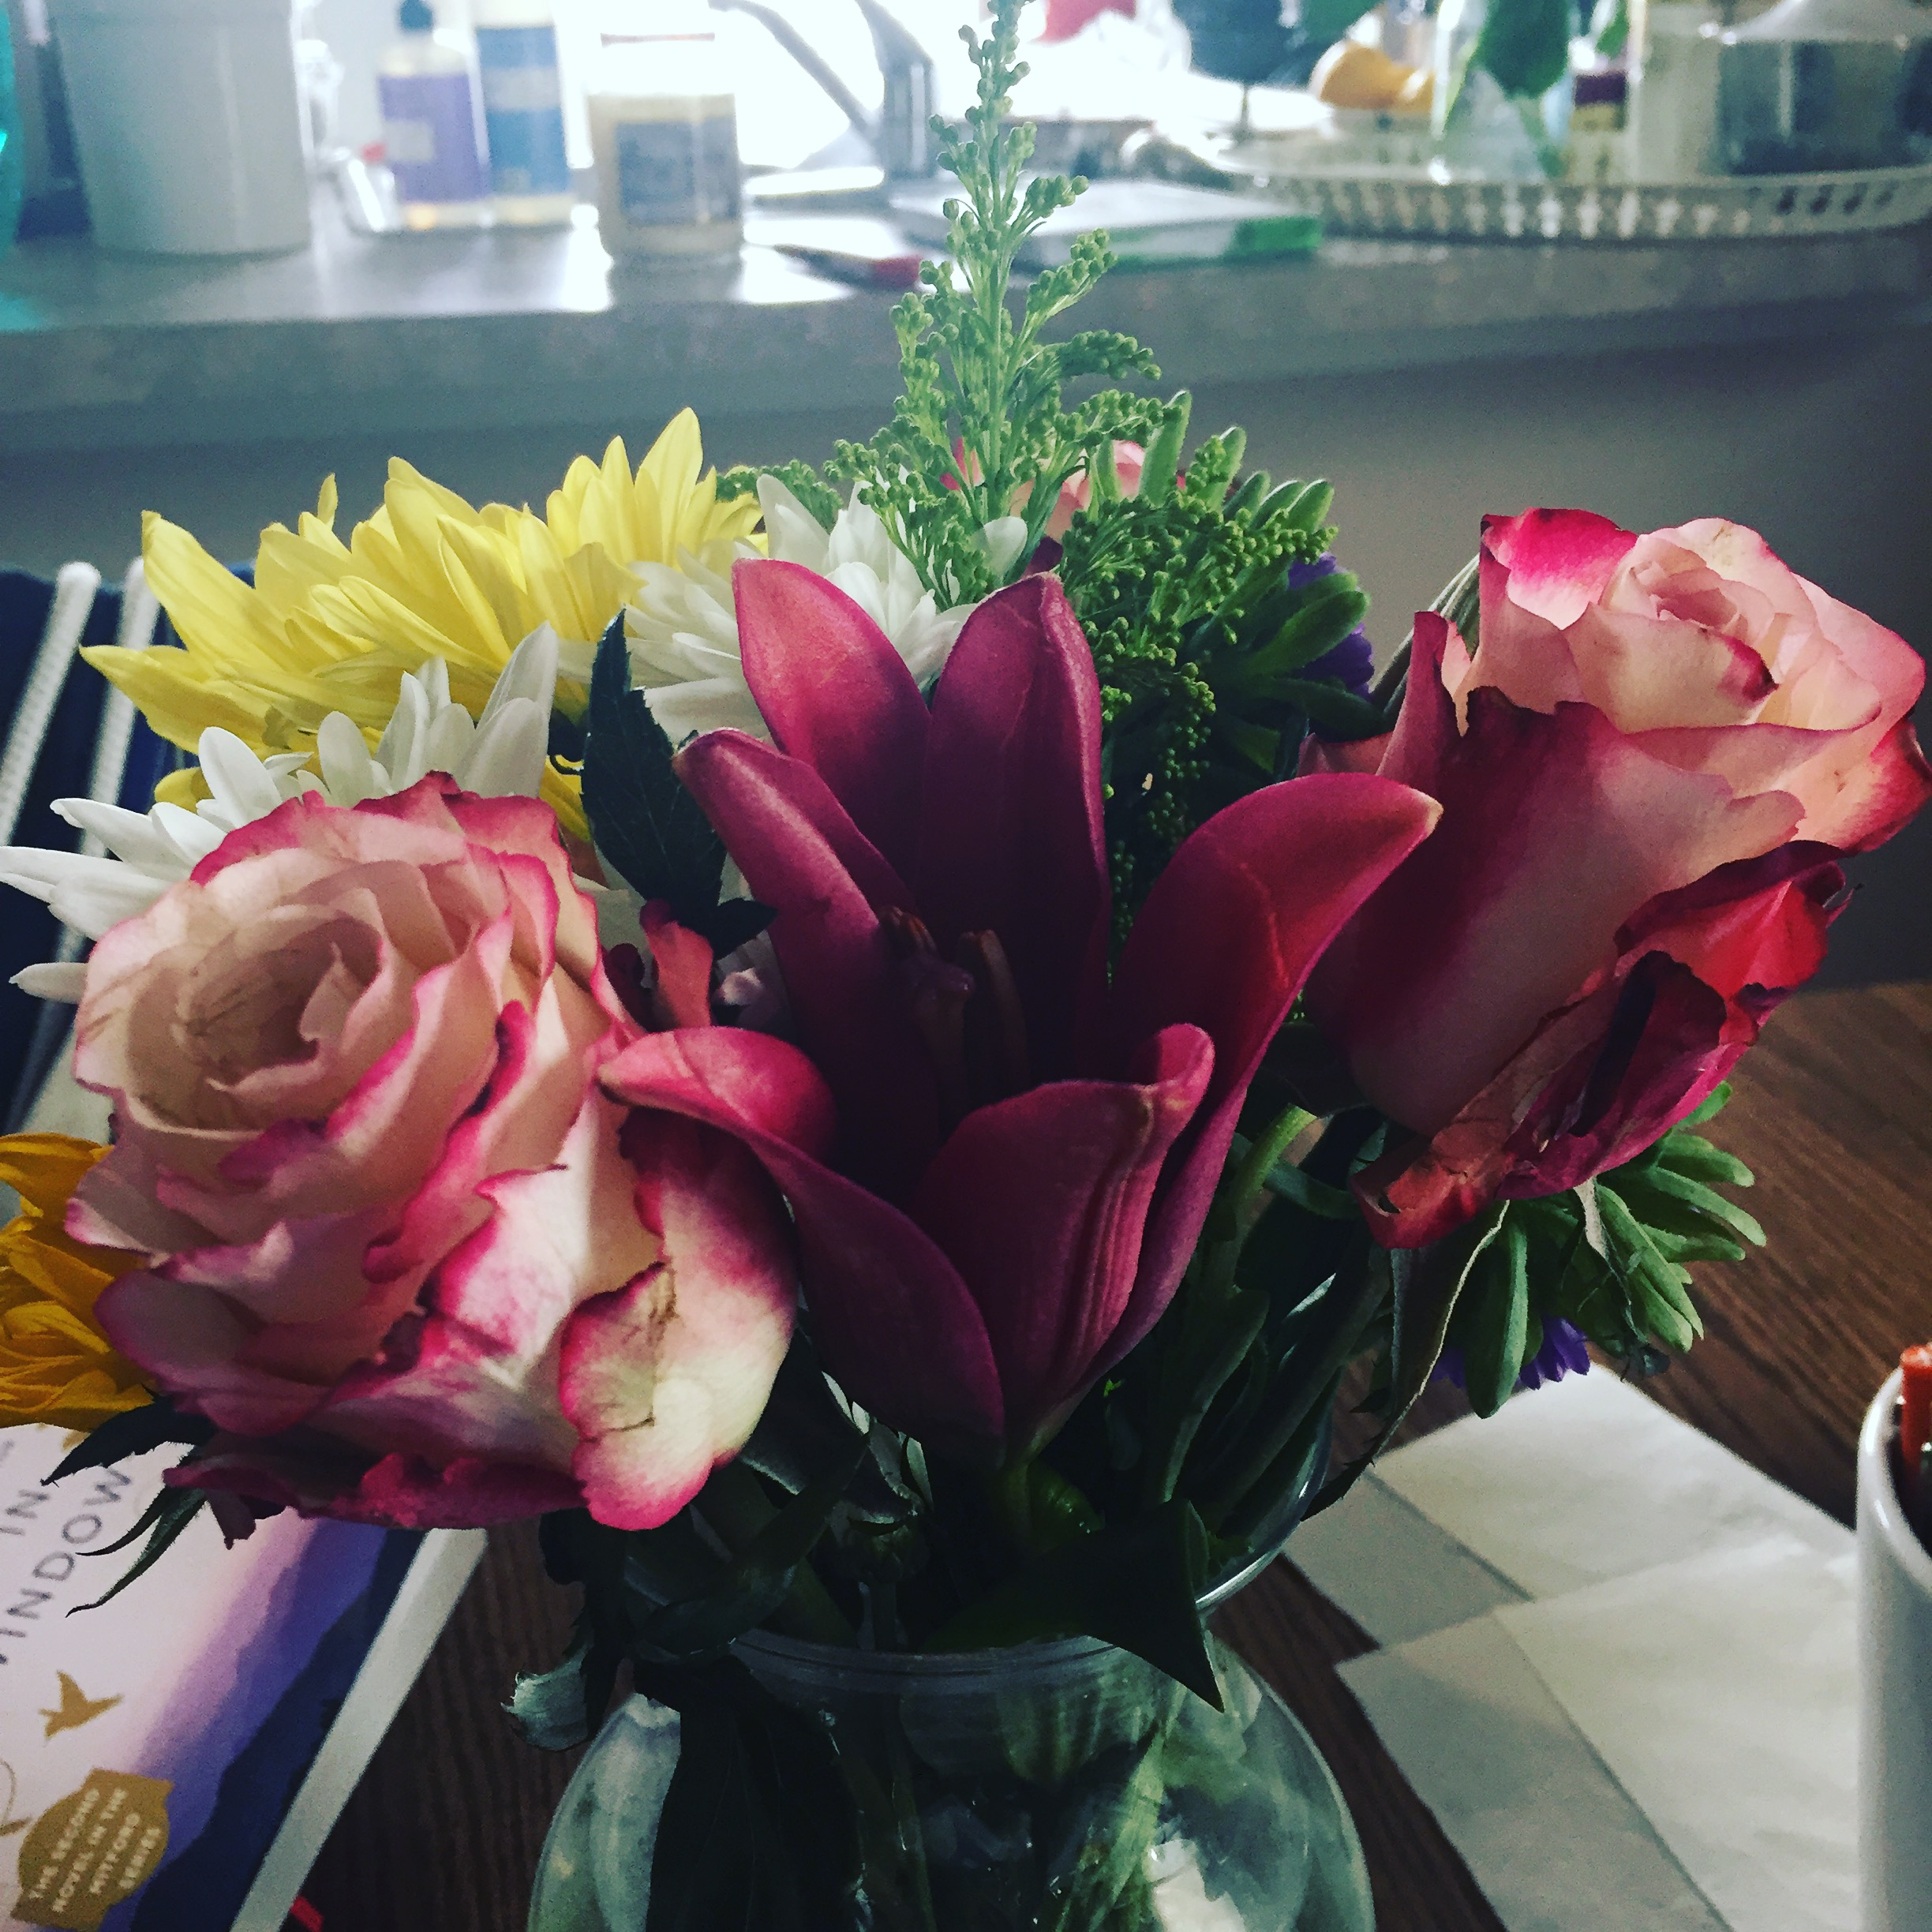 this week's kitchen table flowers